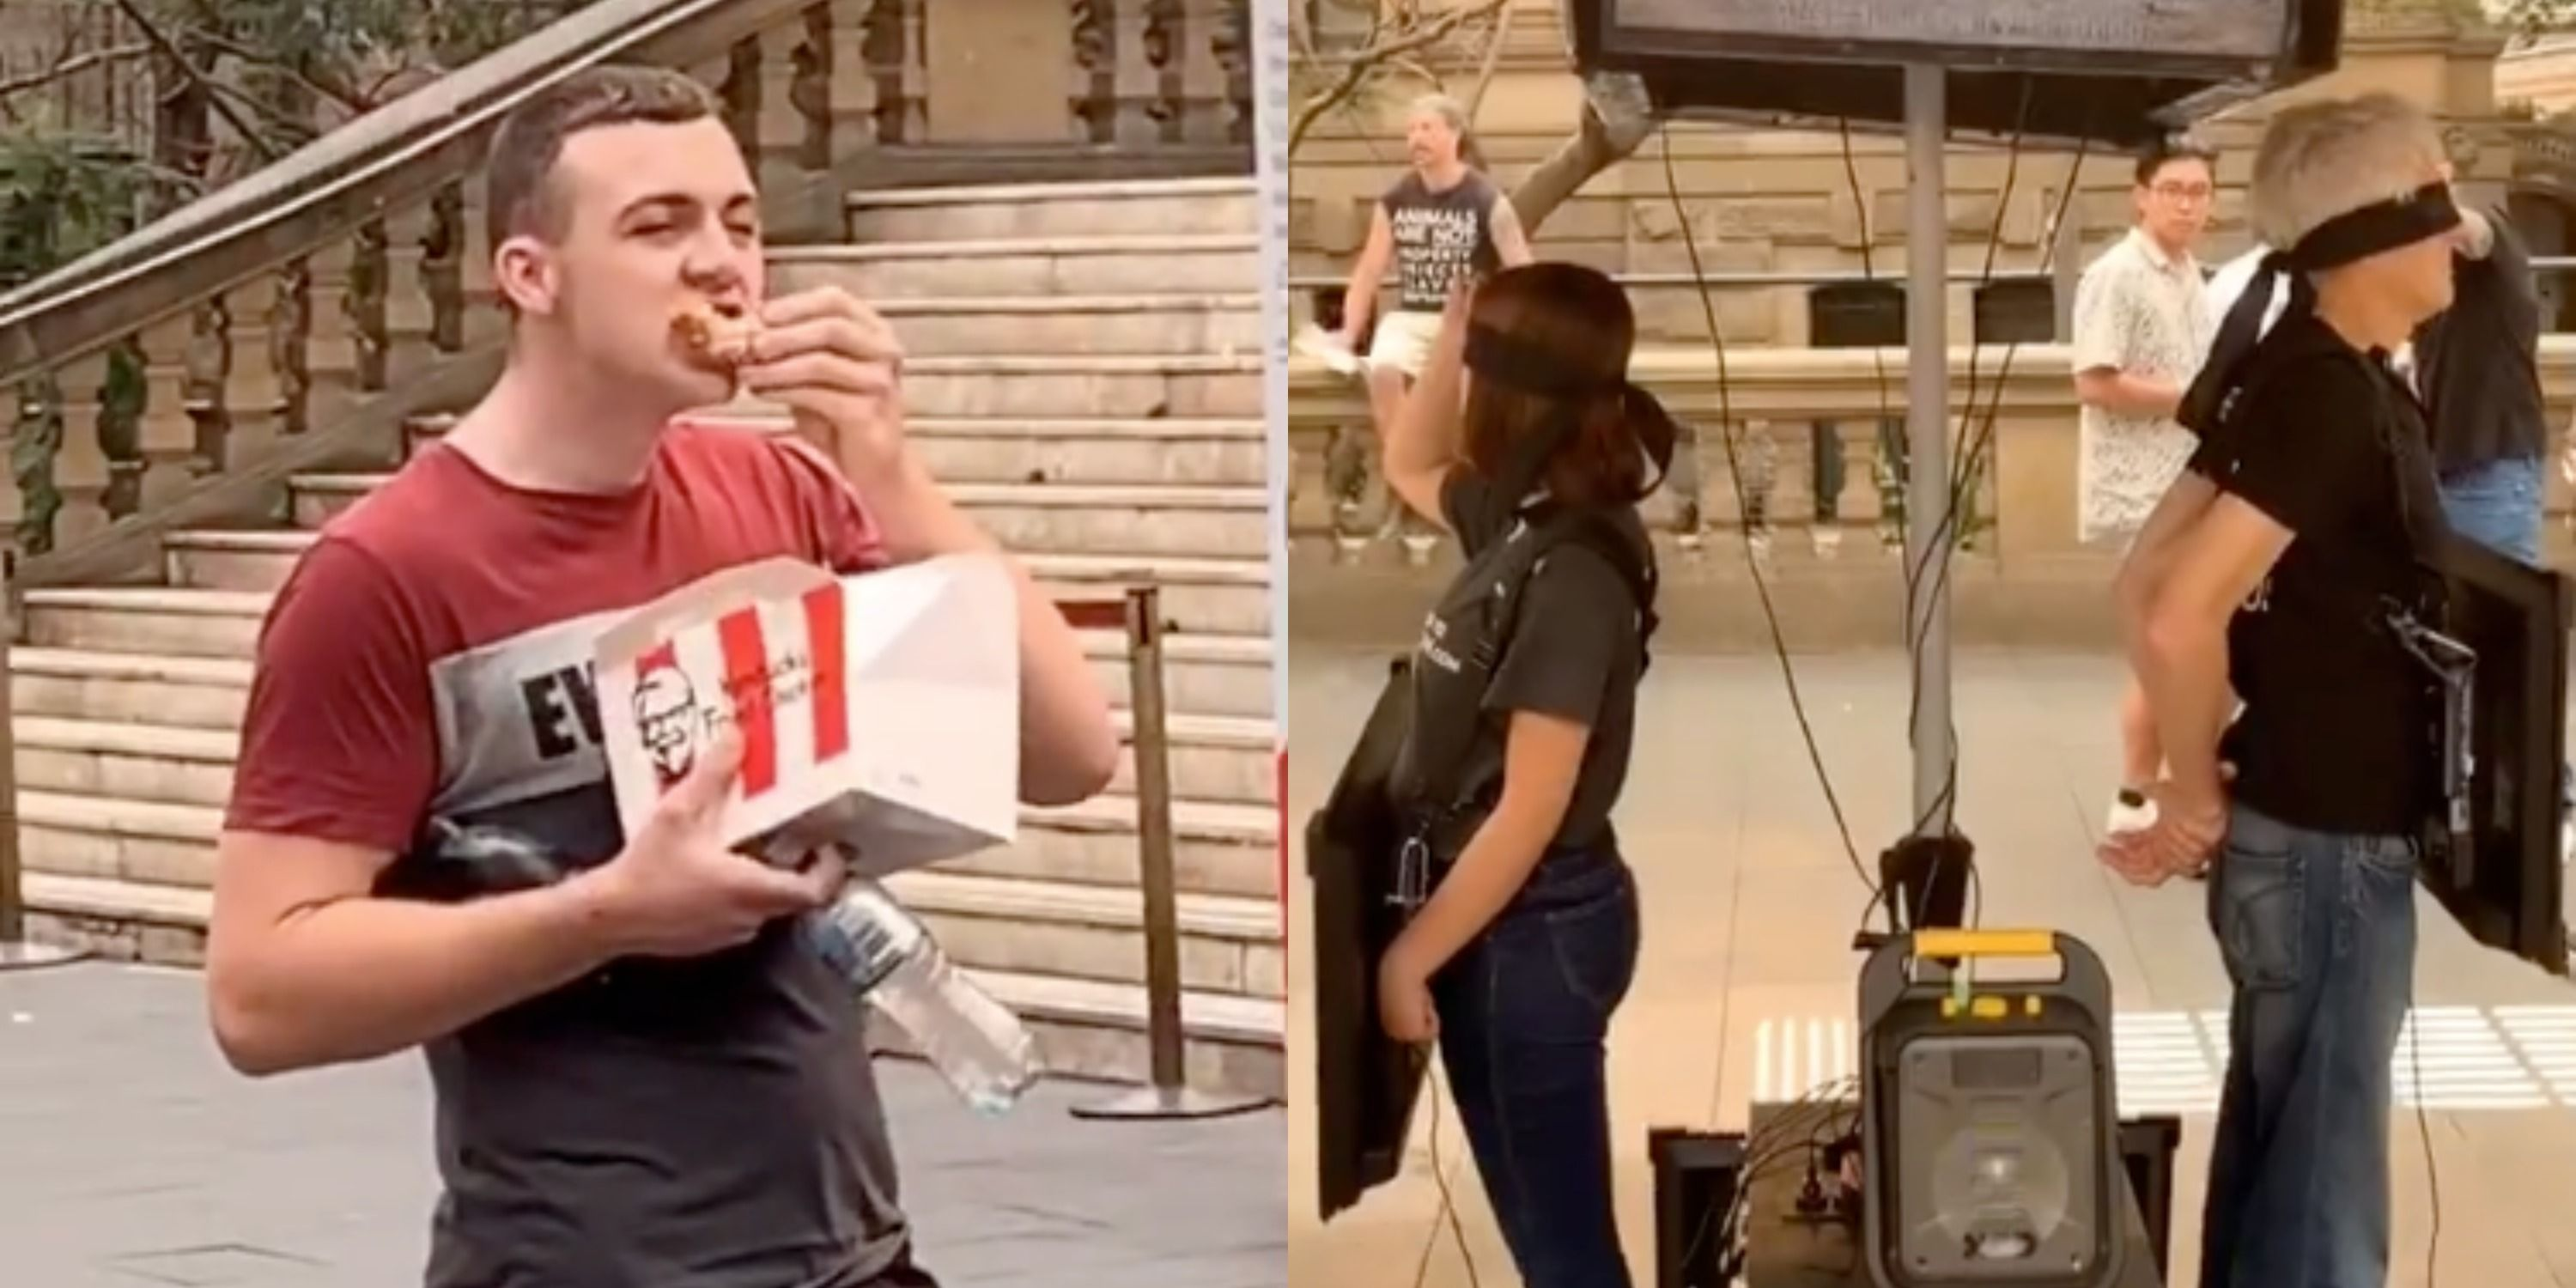 People Cannot Get Enough Of This Man Eating KFC Chicken While Watching Vegan Protestors